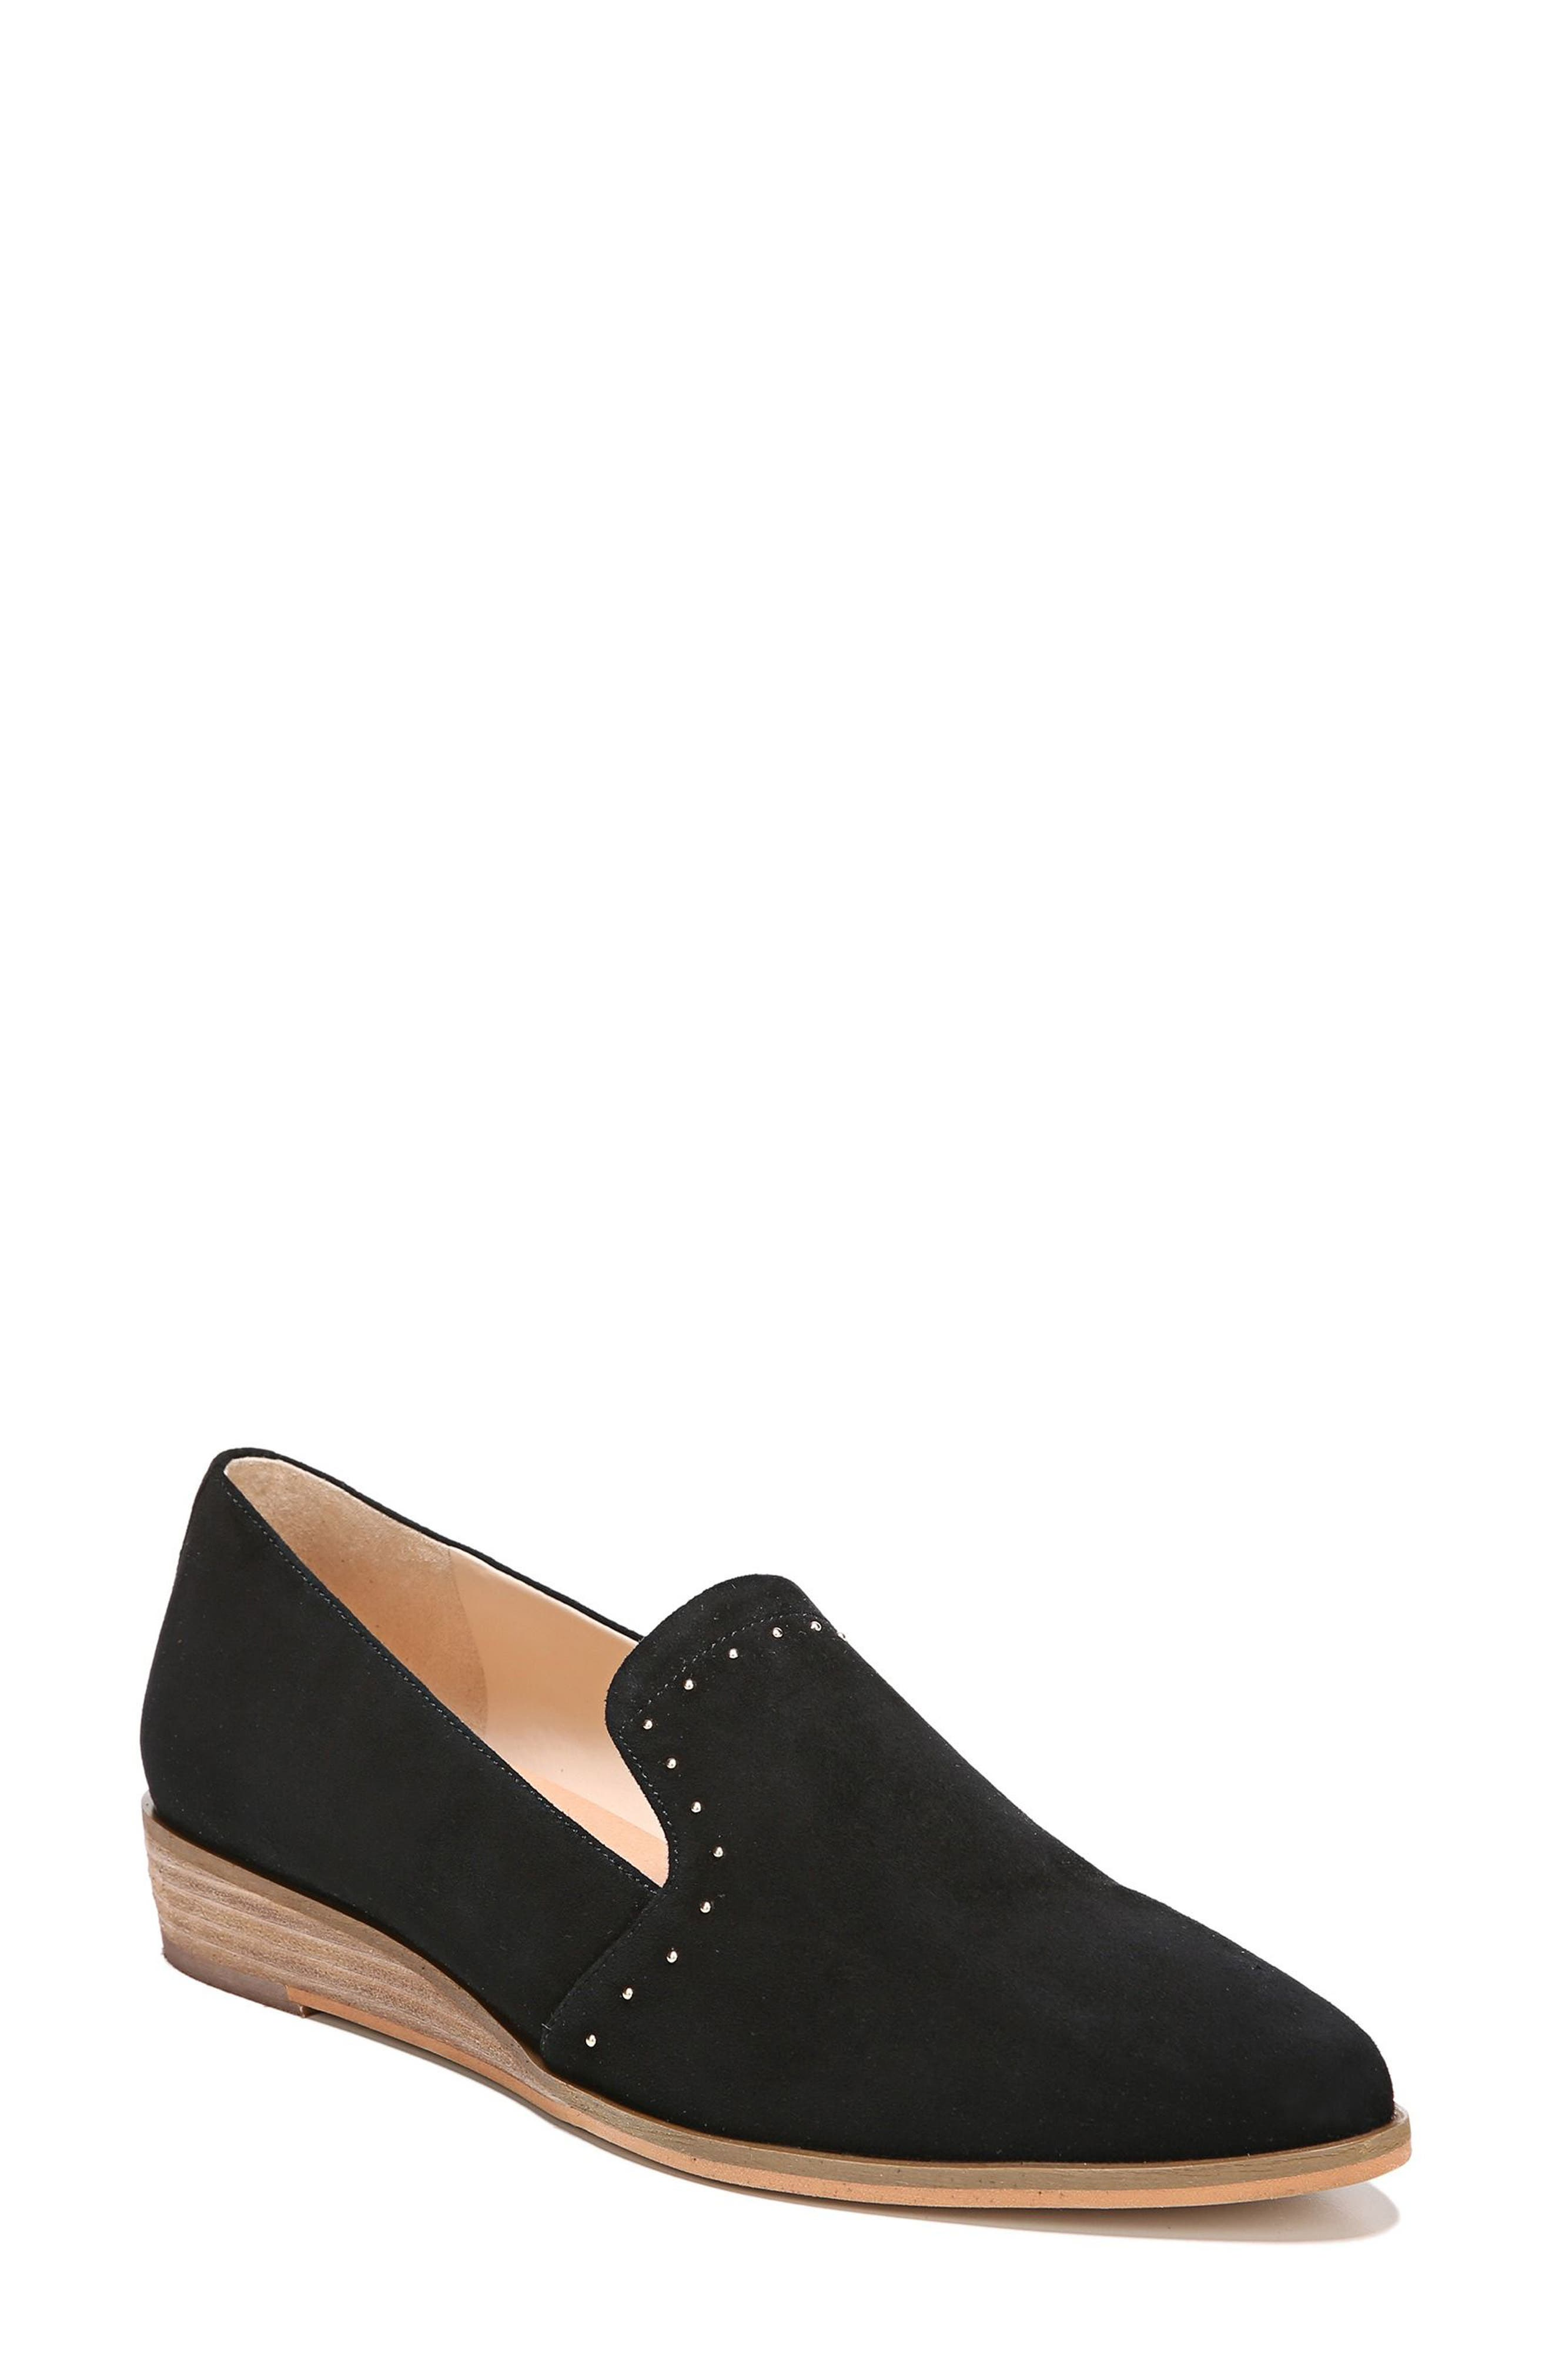 Alternate Image 1 Selected - Dr. Scholl's Keane Loafer Wedge (Women)